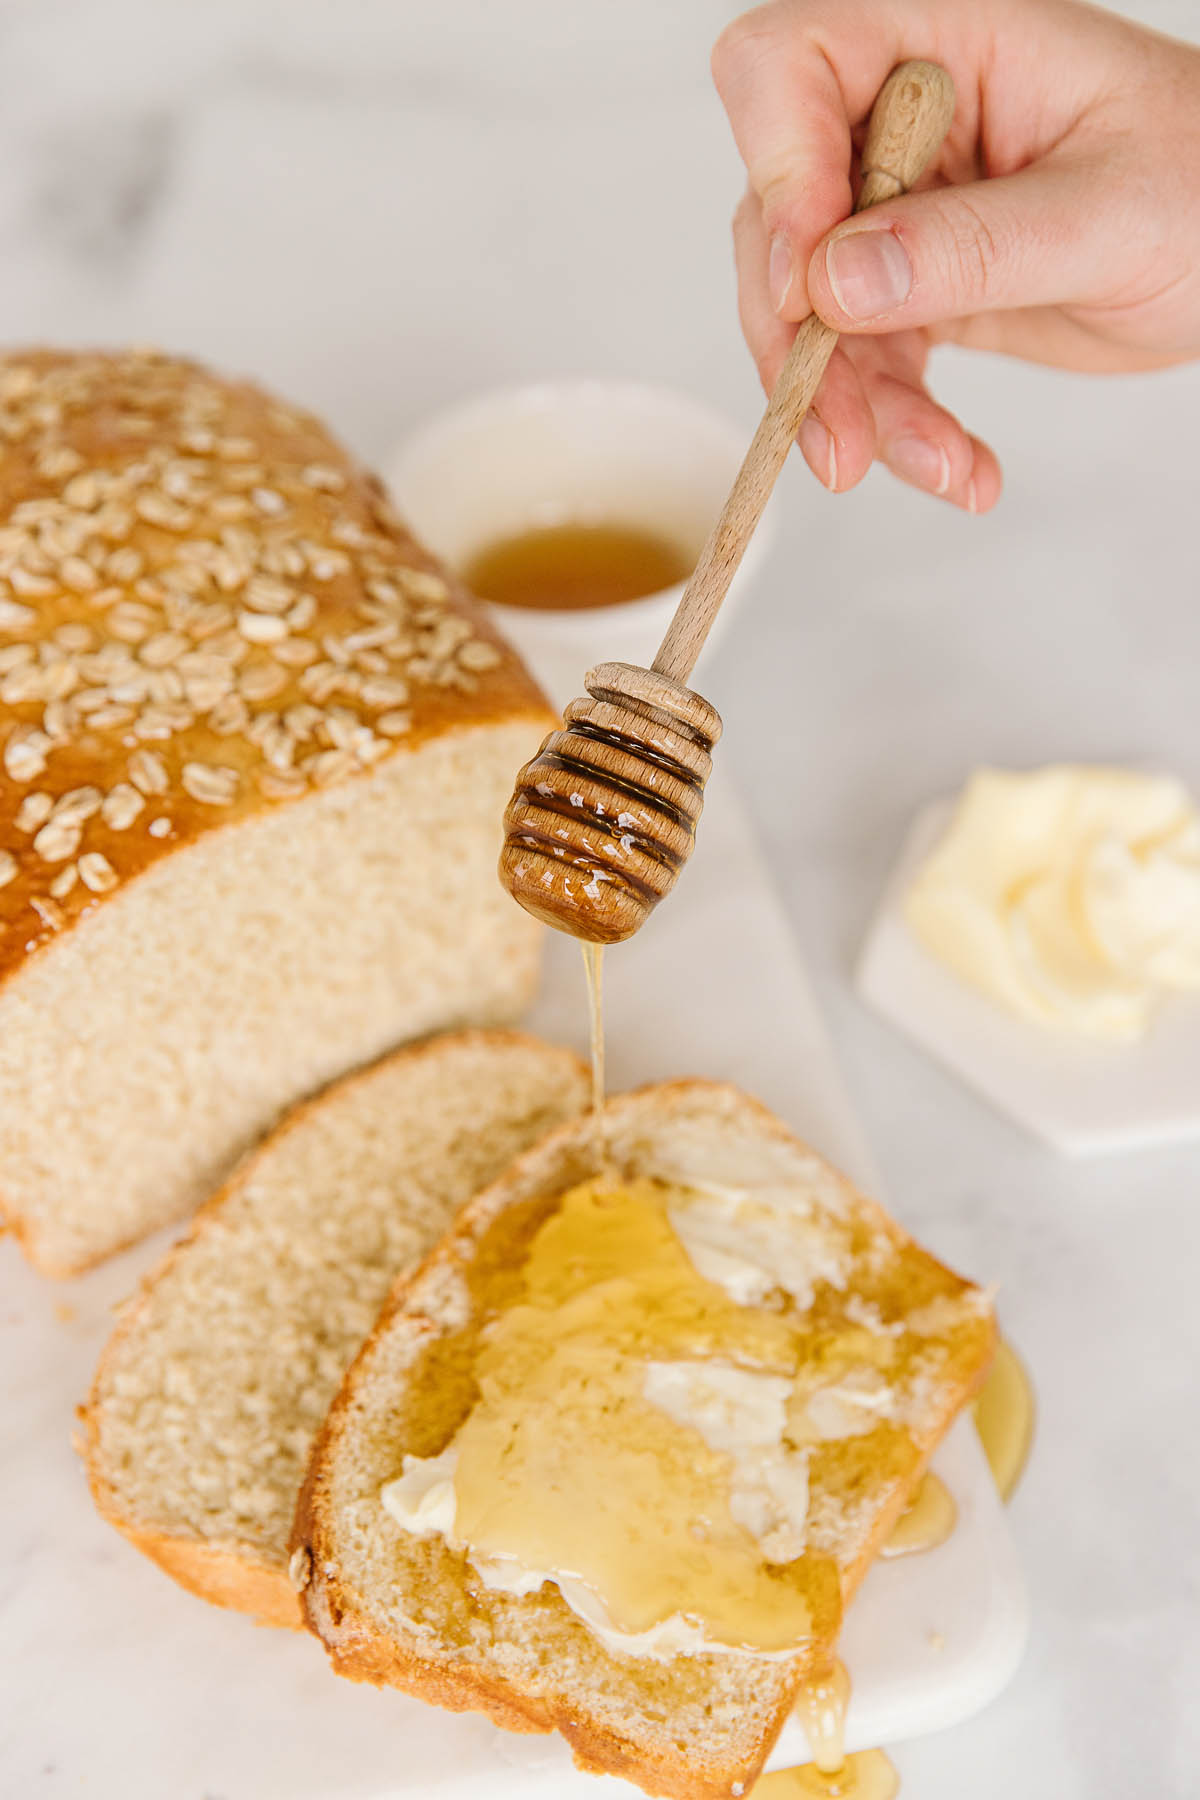 A loaf of honey oatmeal bread cut into slices with butter and honey on it with a hand drizzling honey on the sliced and buttered bread.